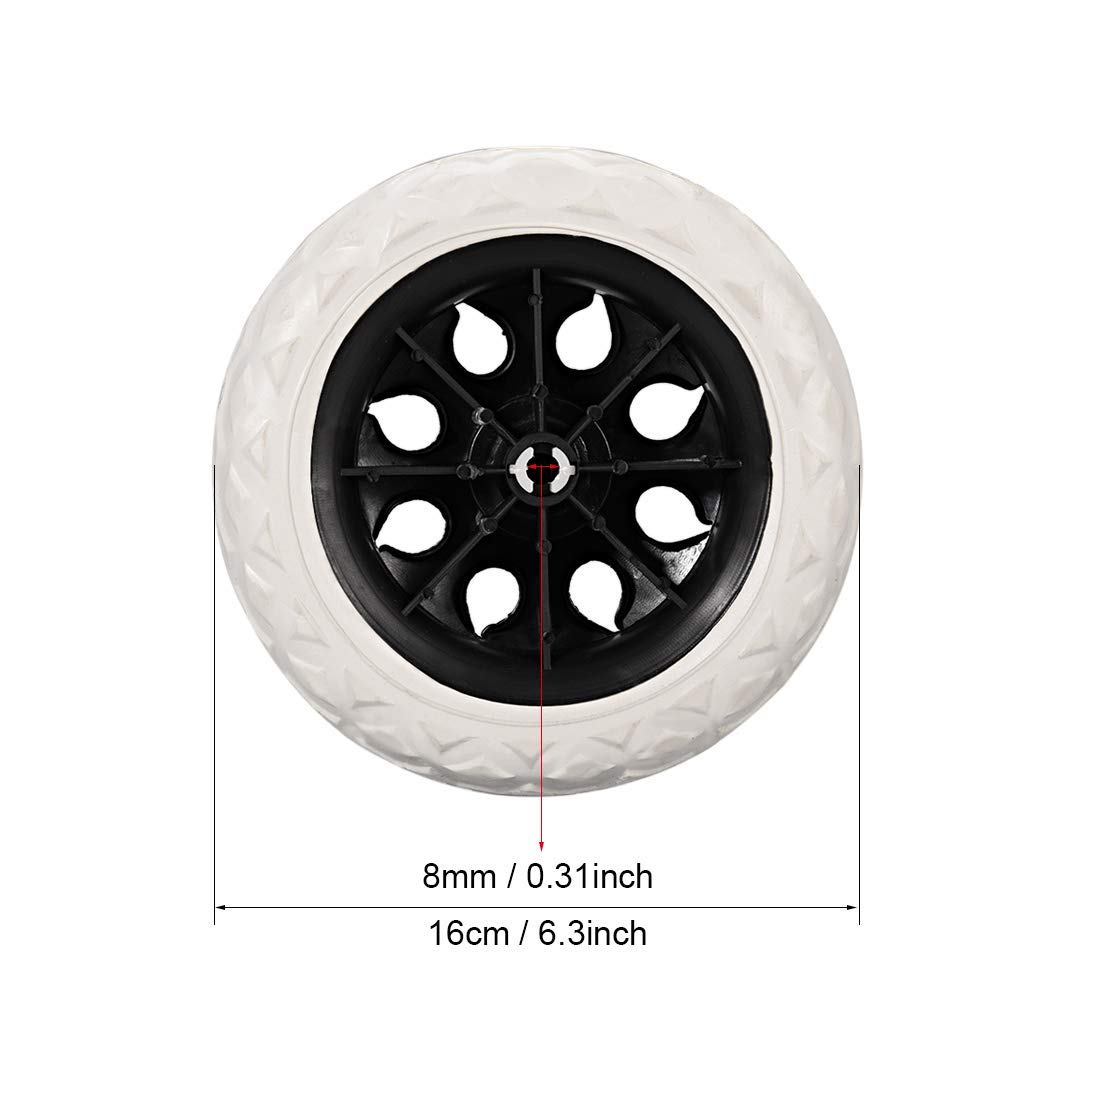 Shopping Cart Caster Trolley Wheels Replacement 6.5 Inch Dia Rubber Foam Black